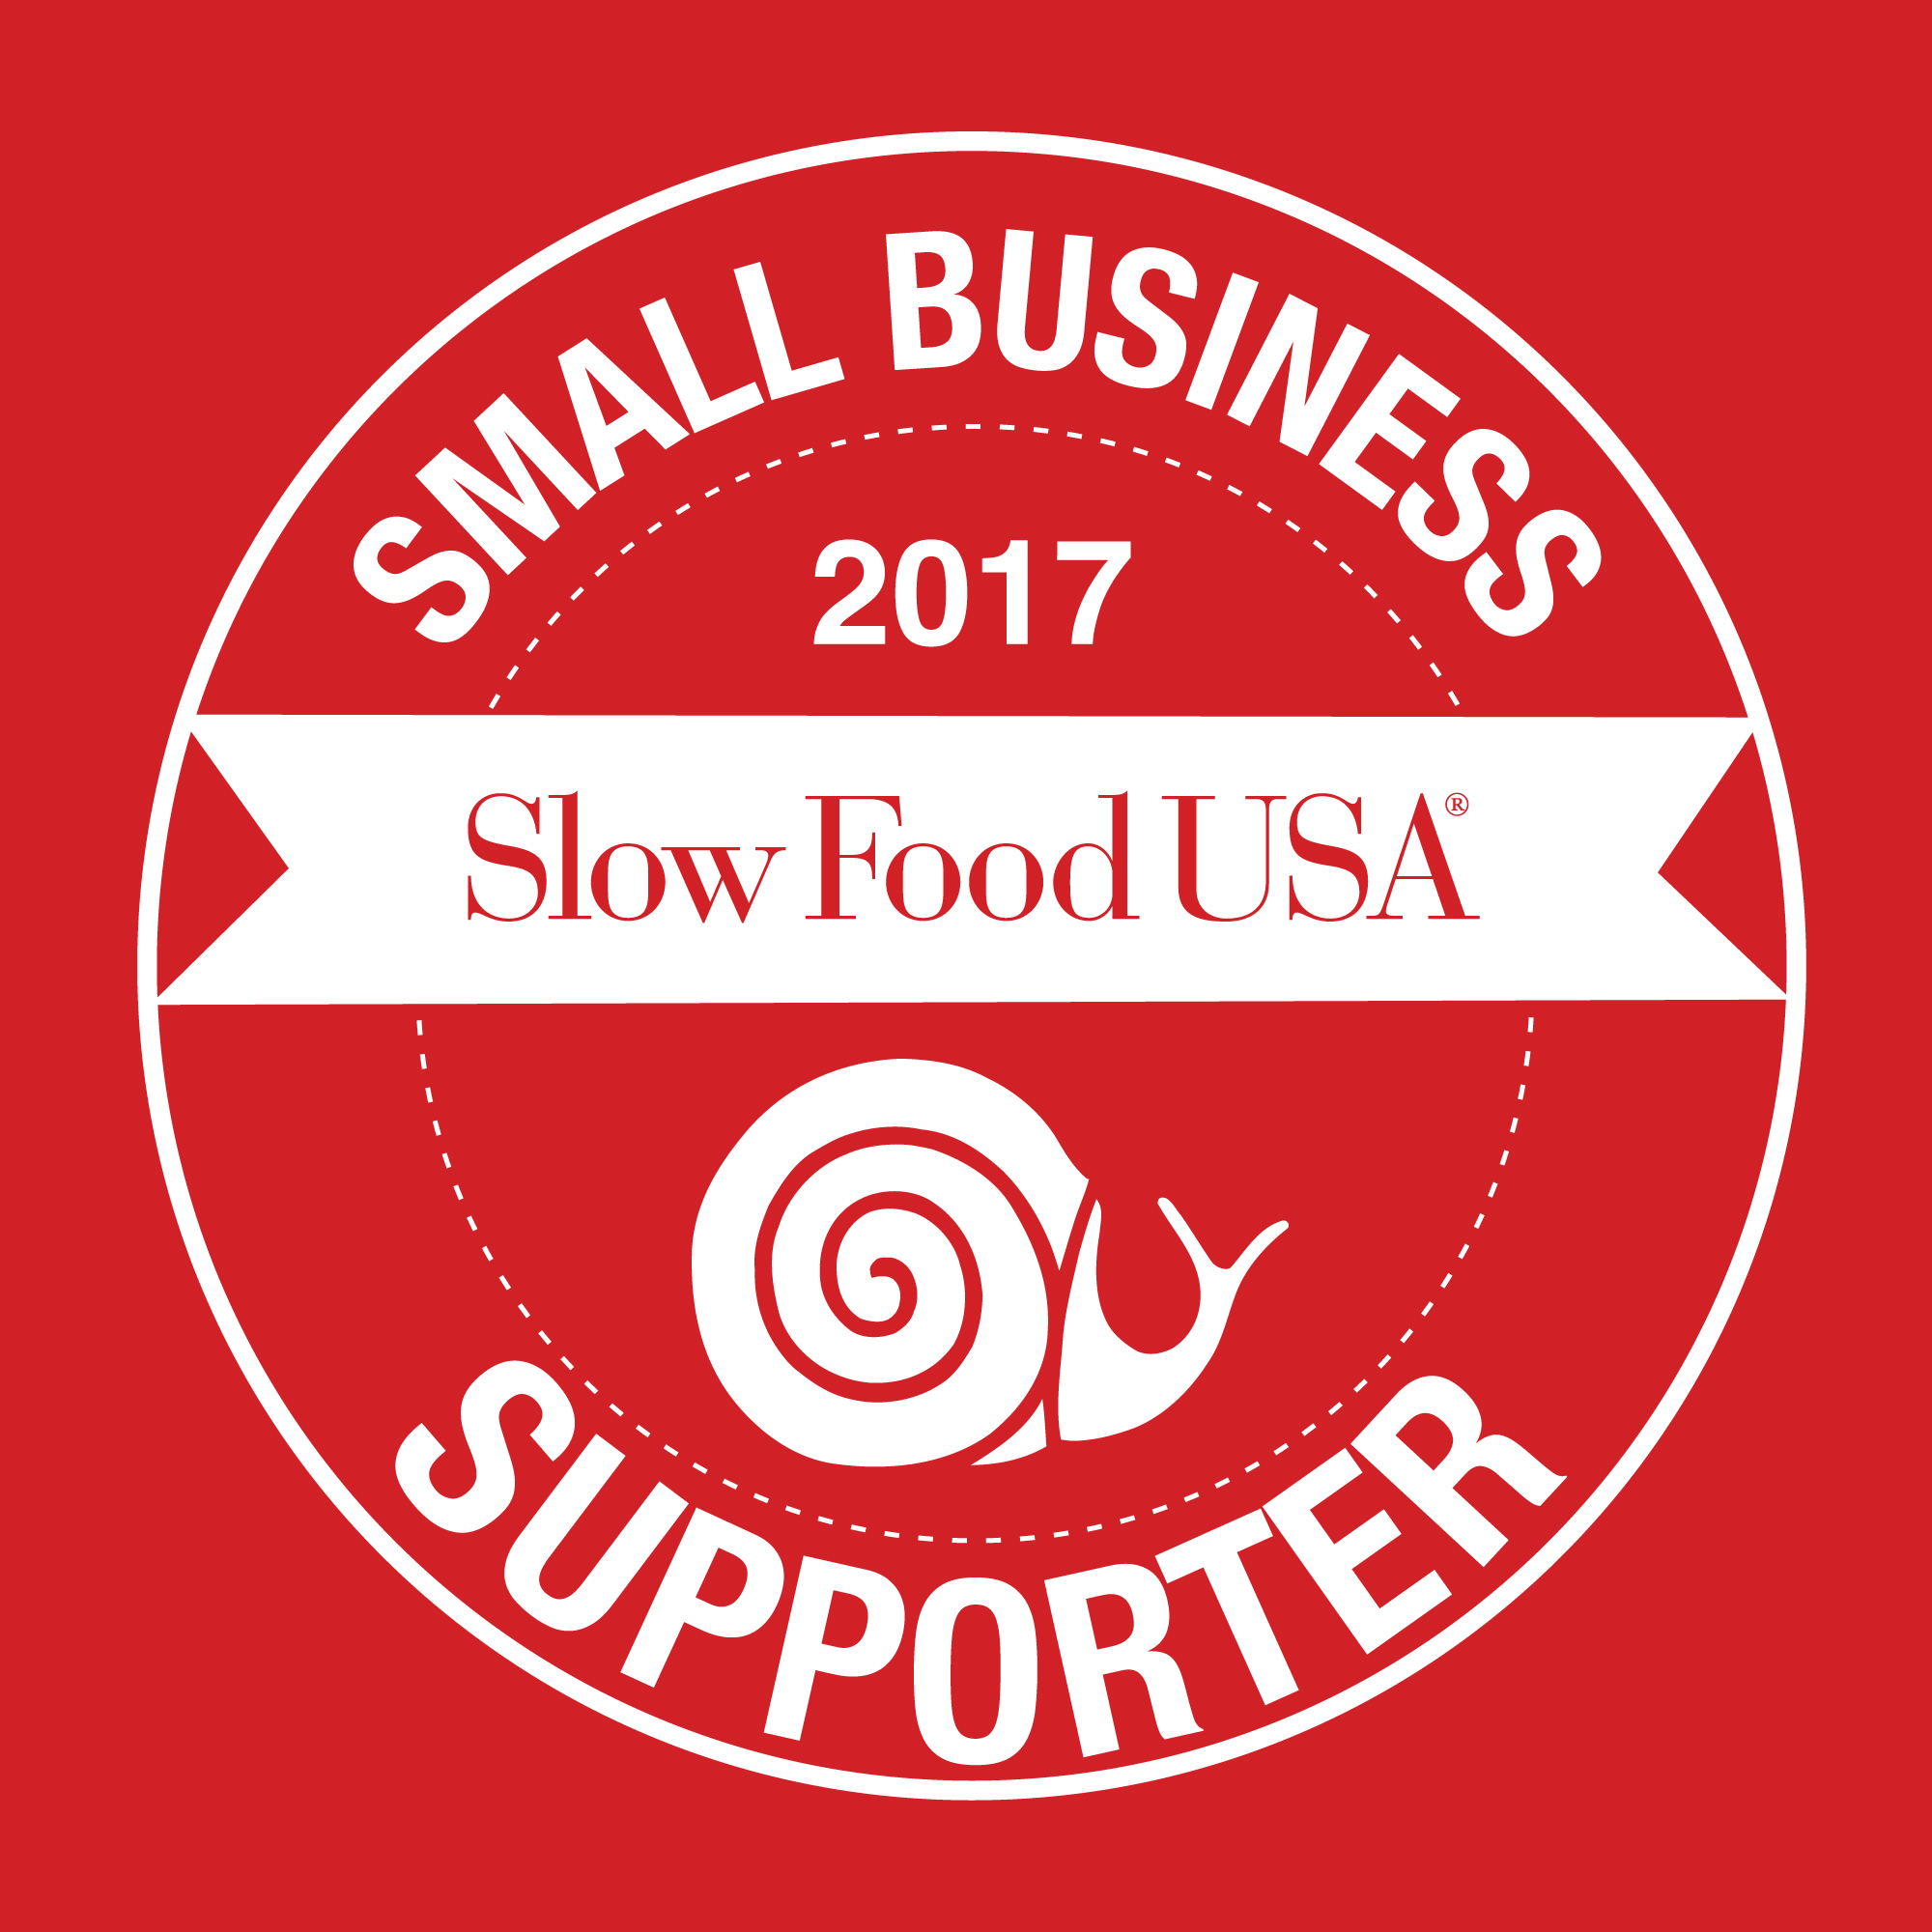 Slow Food USA